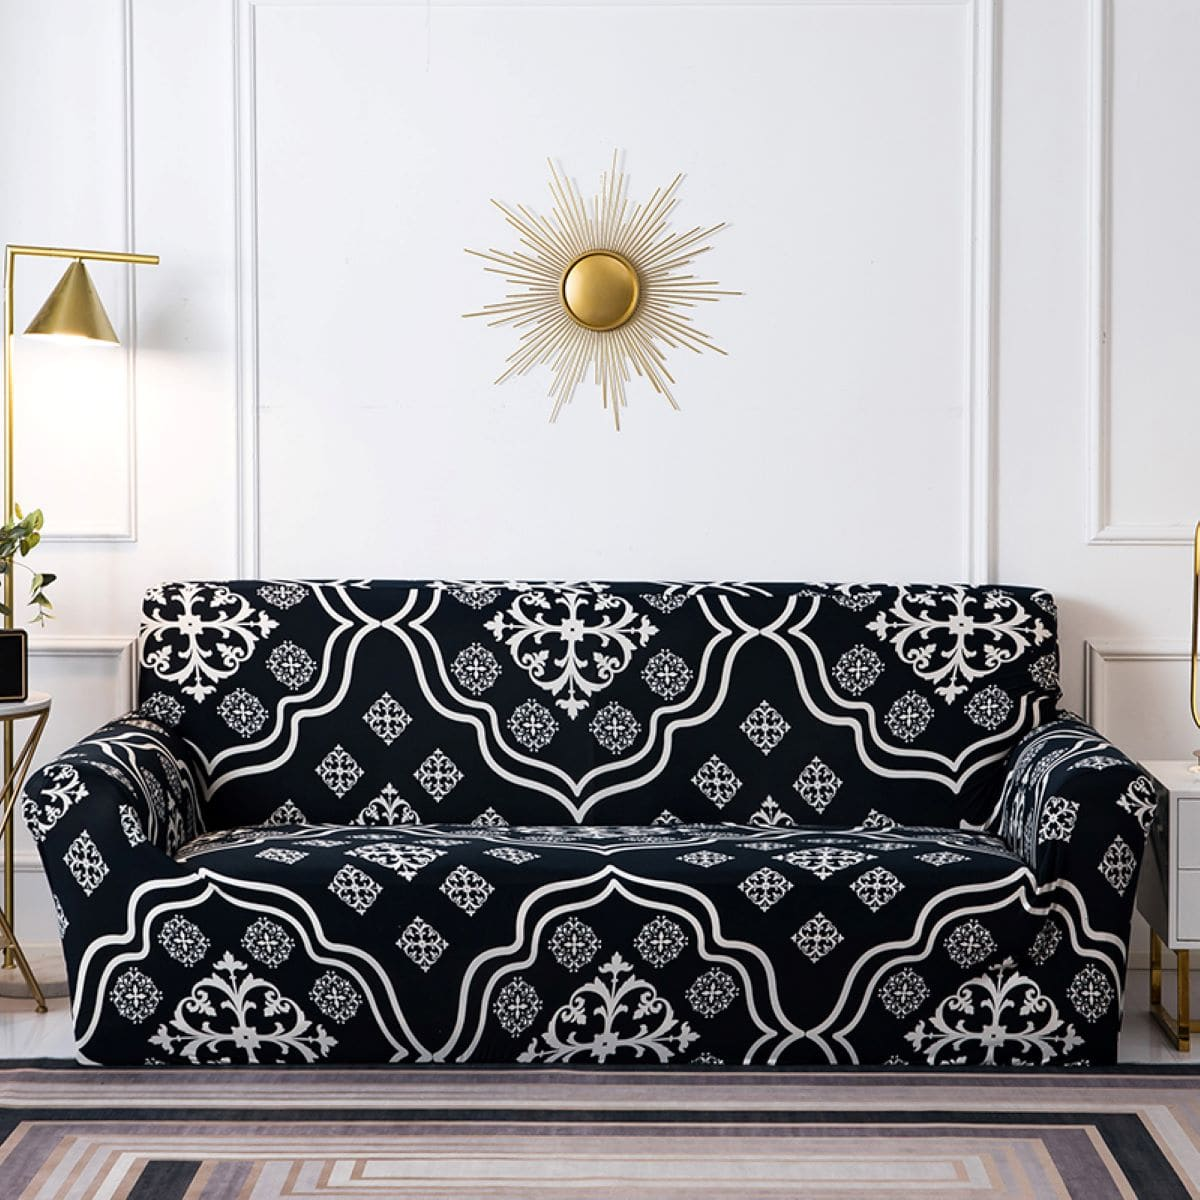 Damask Print Sofa Cover & 1pc Cushion Cover Without Filler